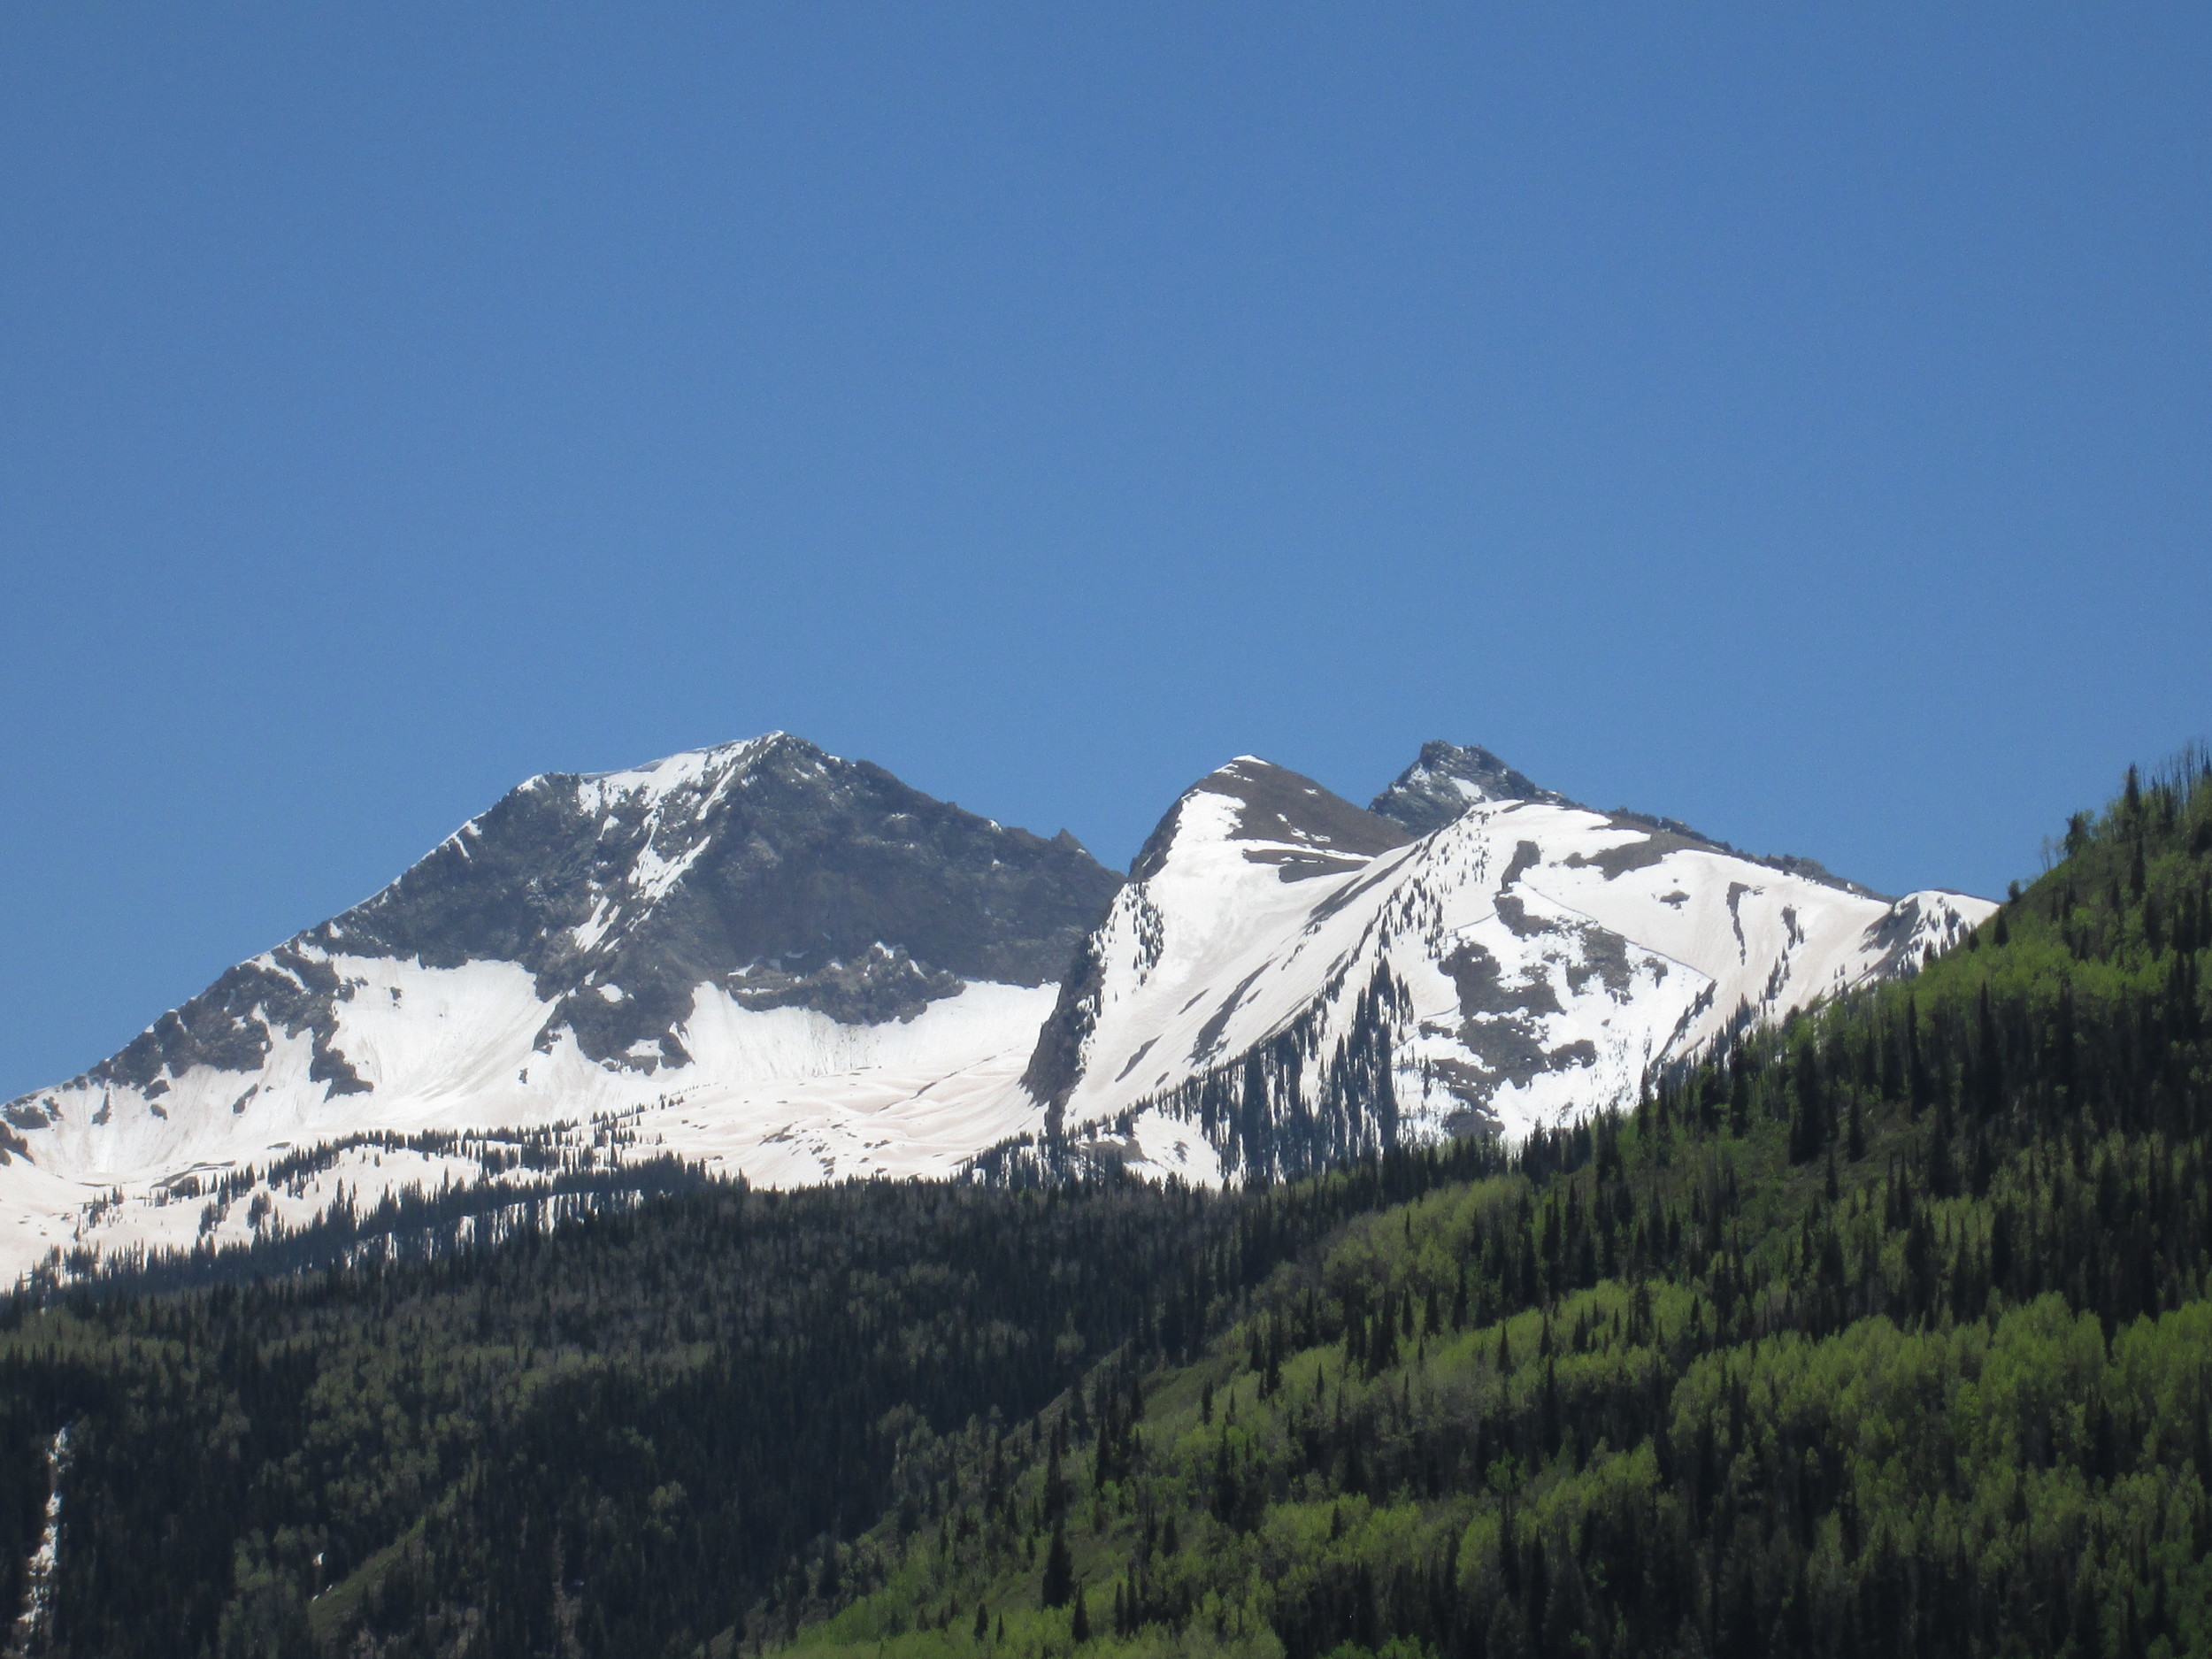 A recent wet slab avalanche on a flank of the north face of Chair Mountain, just south of McClure Pass. Dust layer D8 and other merged dust layers were rapidly re-emerging and may have contributed to this avalanche.